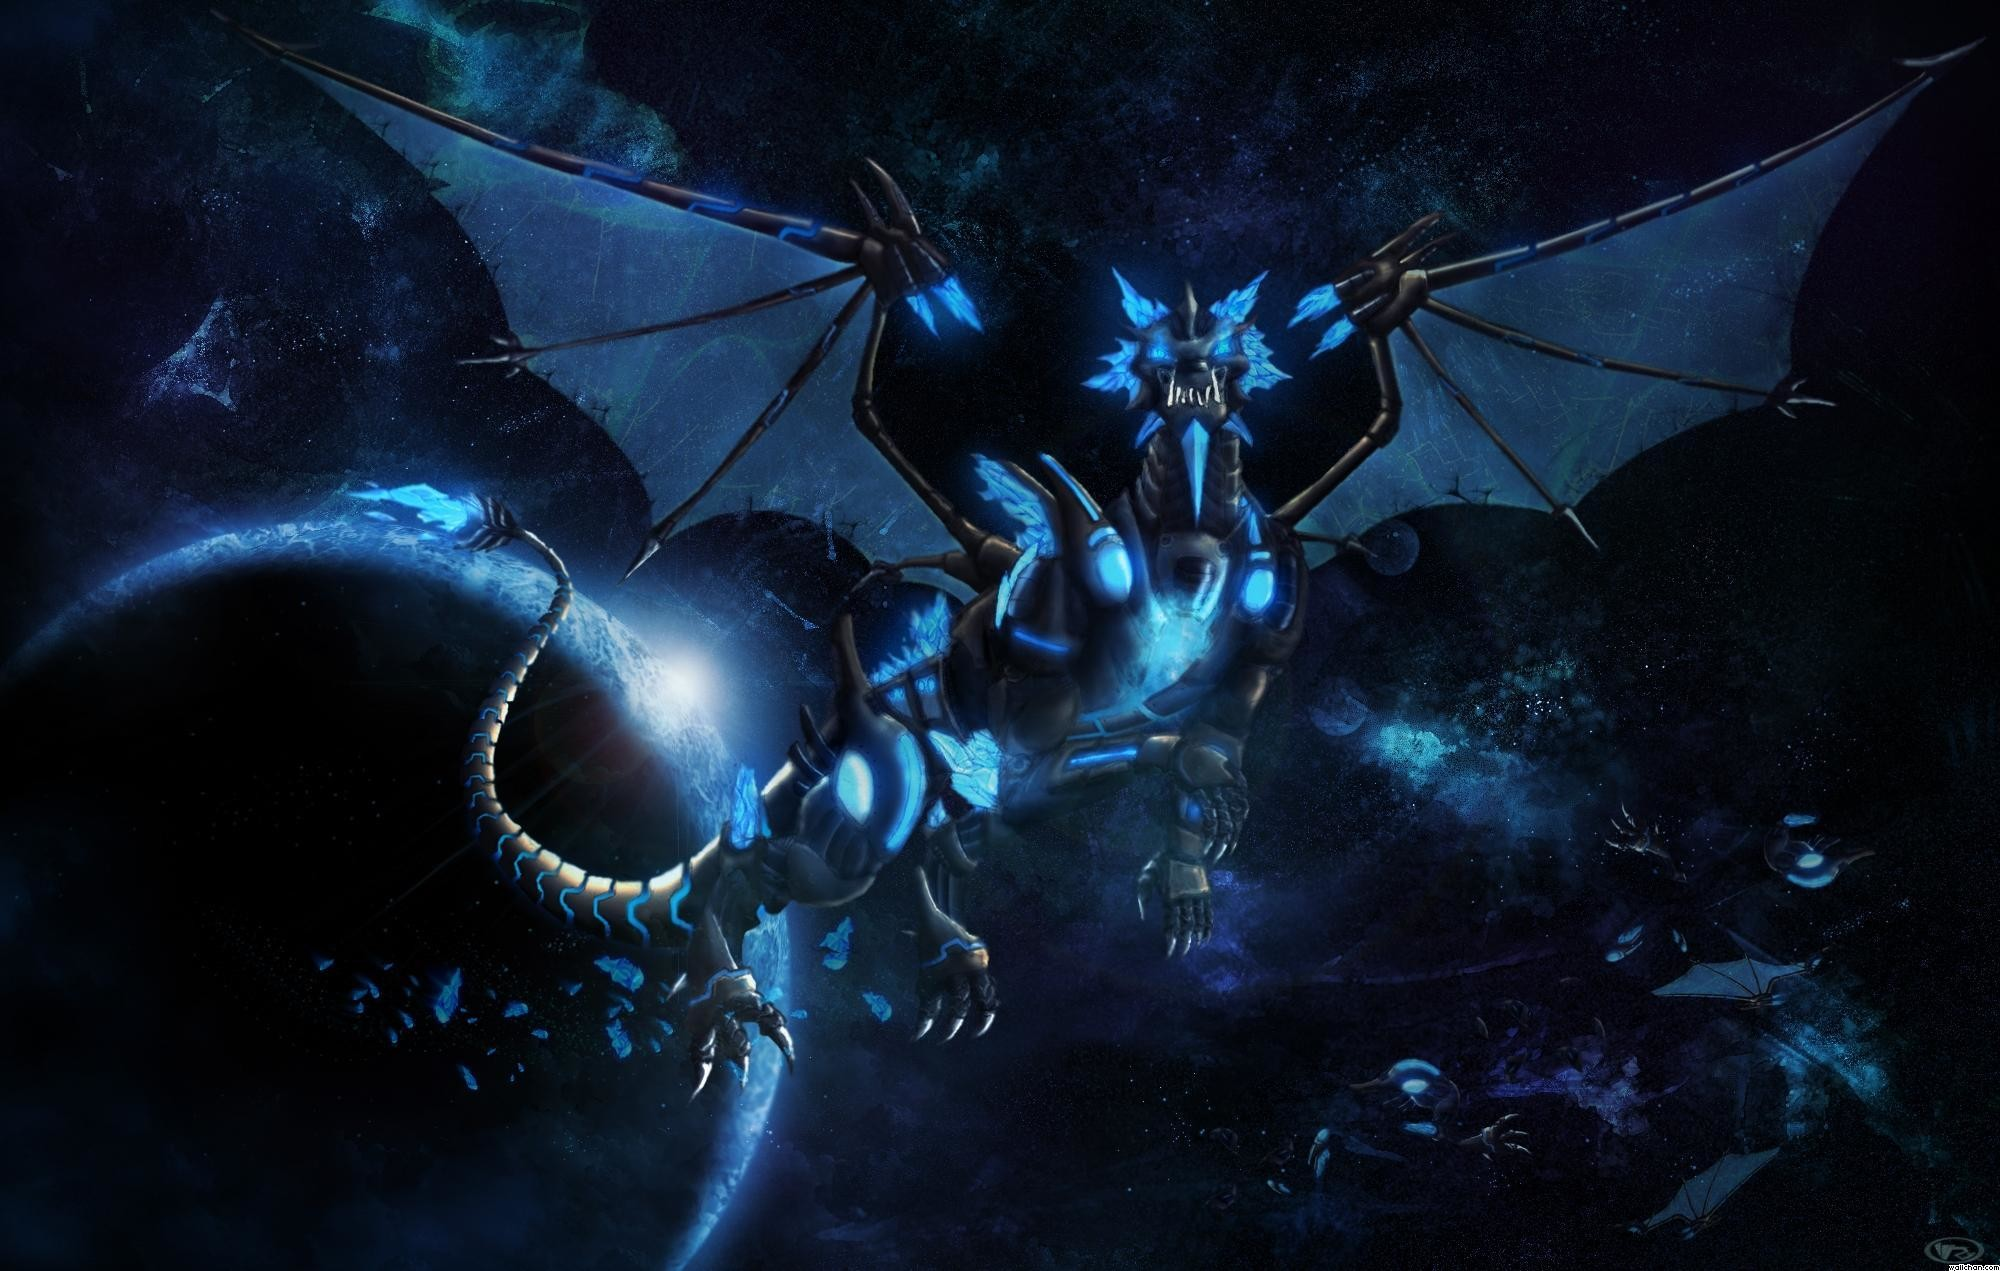 2000x1271 Blue Dragon Wallpapers - Wallpaper Cave Coolest Dragon ...